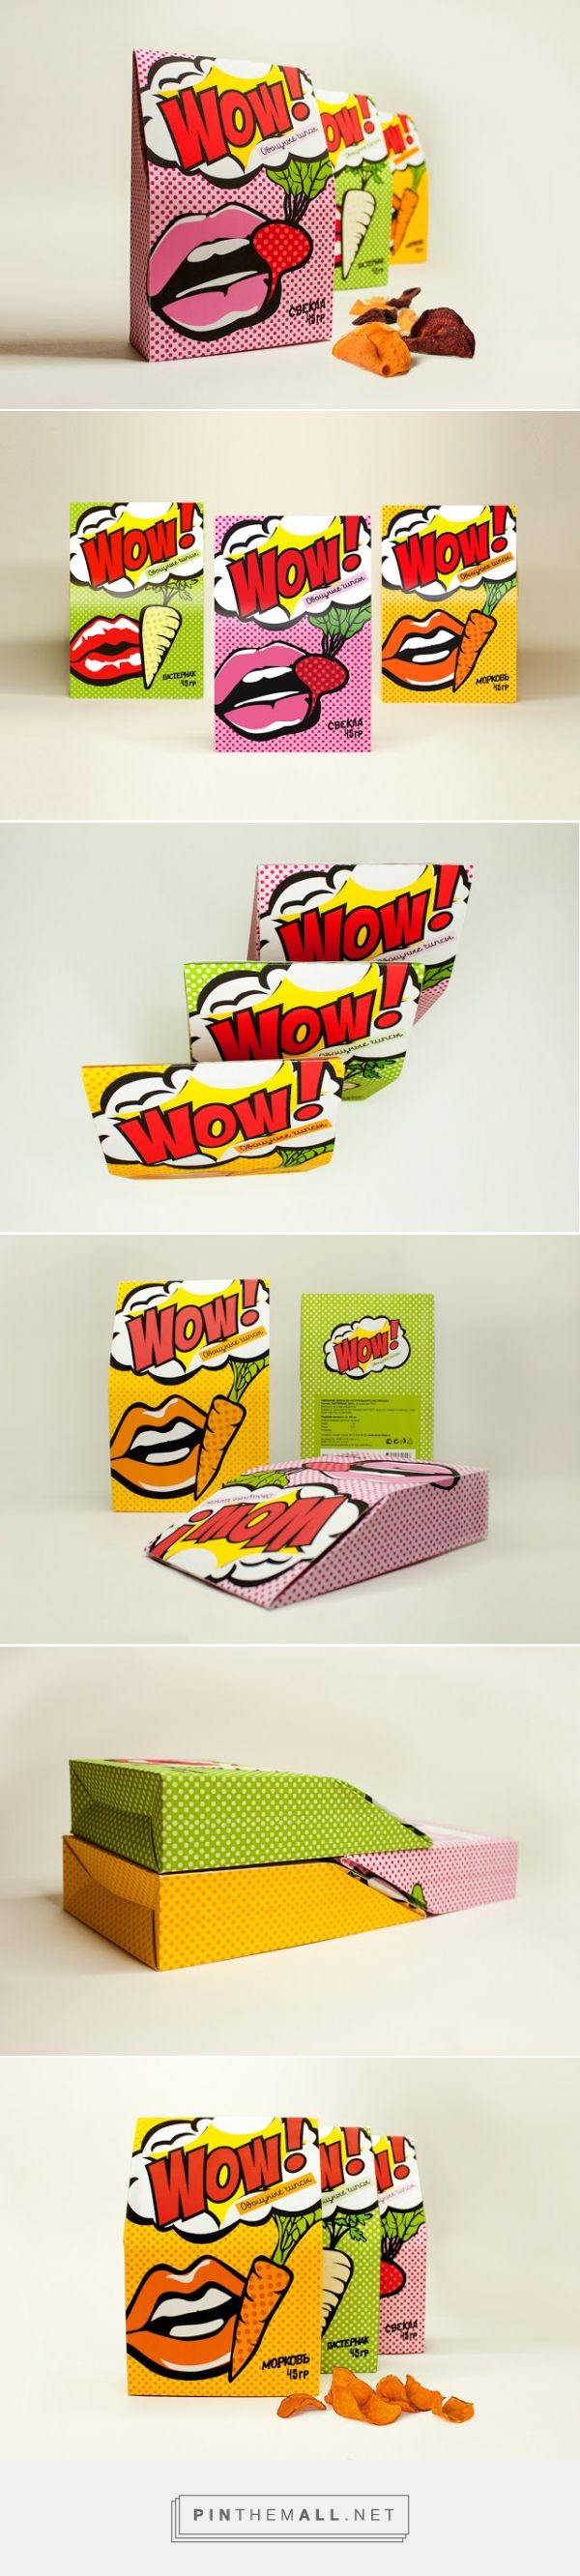 """WOW! Chips For Girls (Student Project) by Anastasia Shakhovskaya. Very fun """"pop art"""" #packaging curated by Packaging Diva PD created via http://www.packagingoftheworld.com/2014/12/wow-chips-for-girls-student-project.html"""